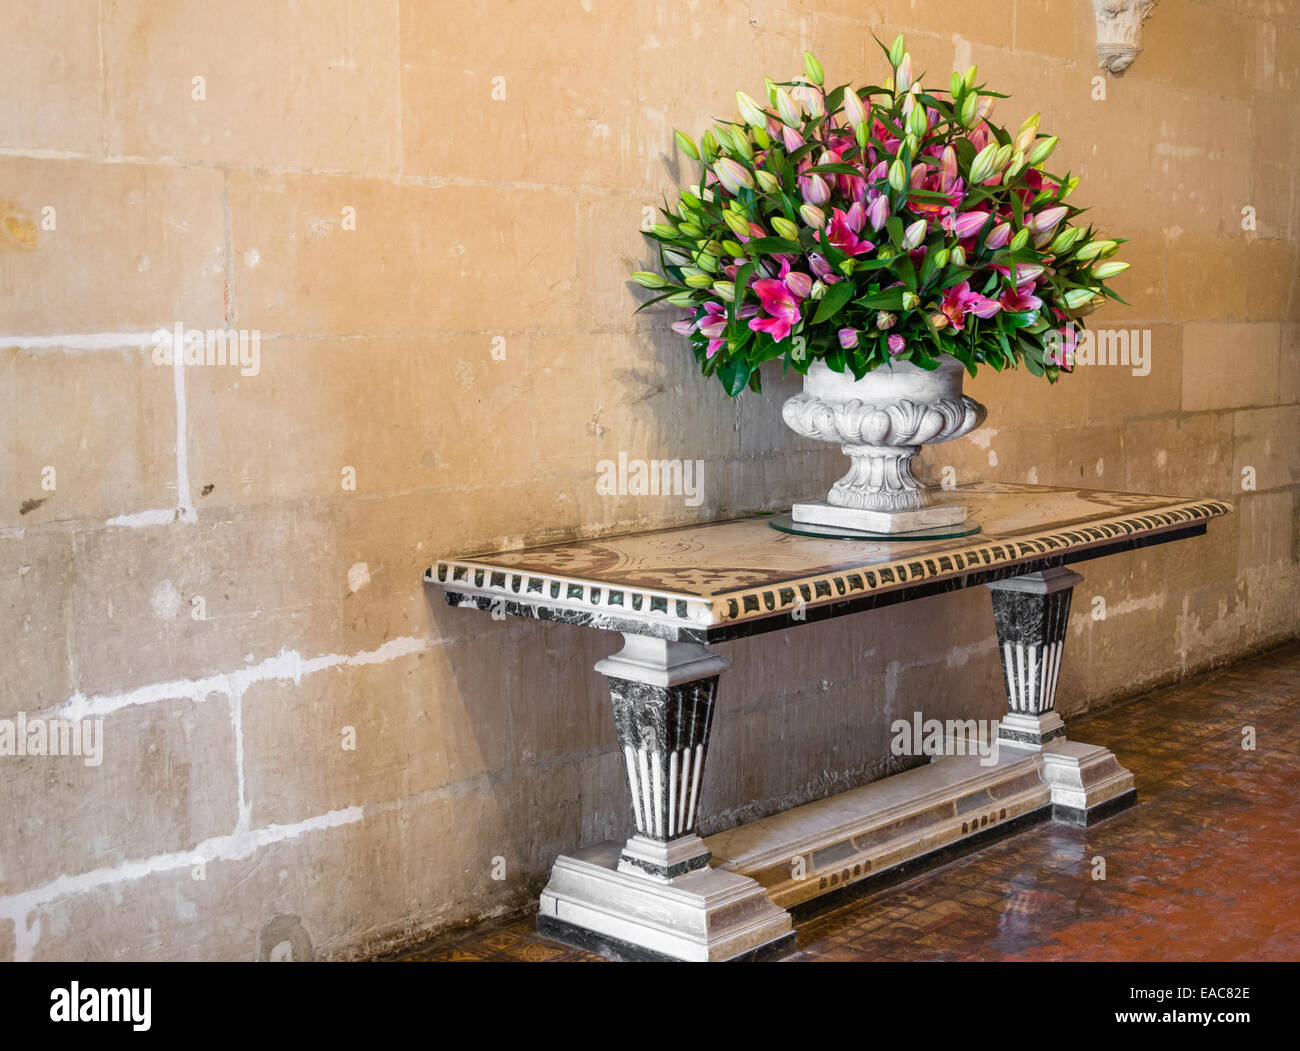 Vase Flowers On Hall Table High Resolution Stock Photography And Images Alamy